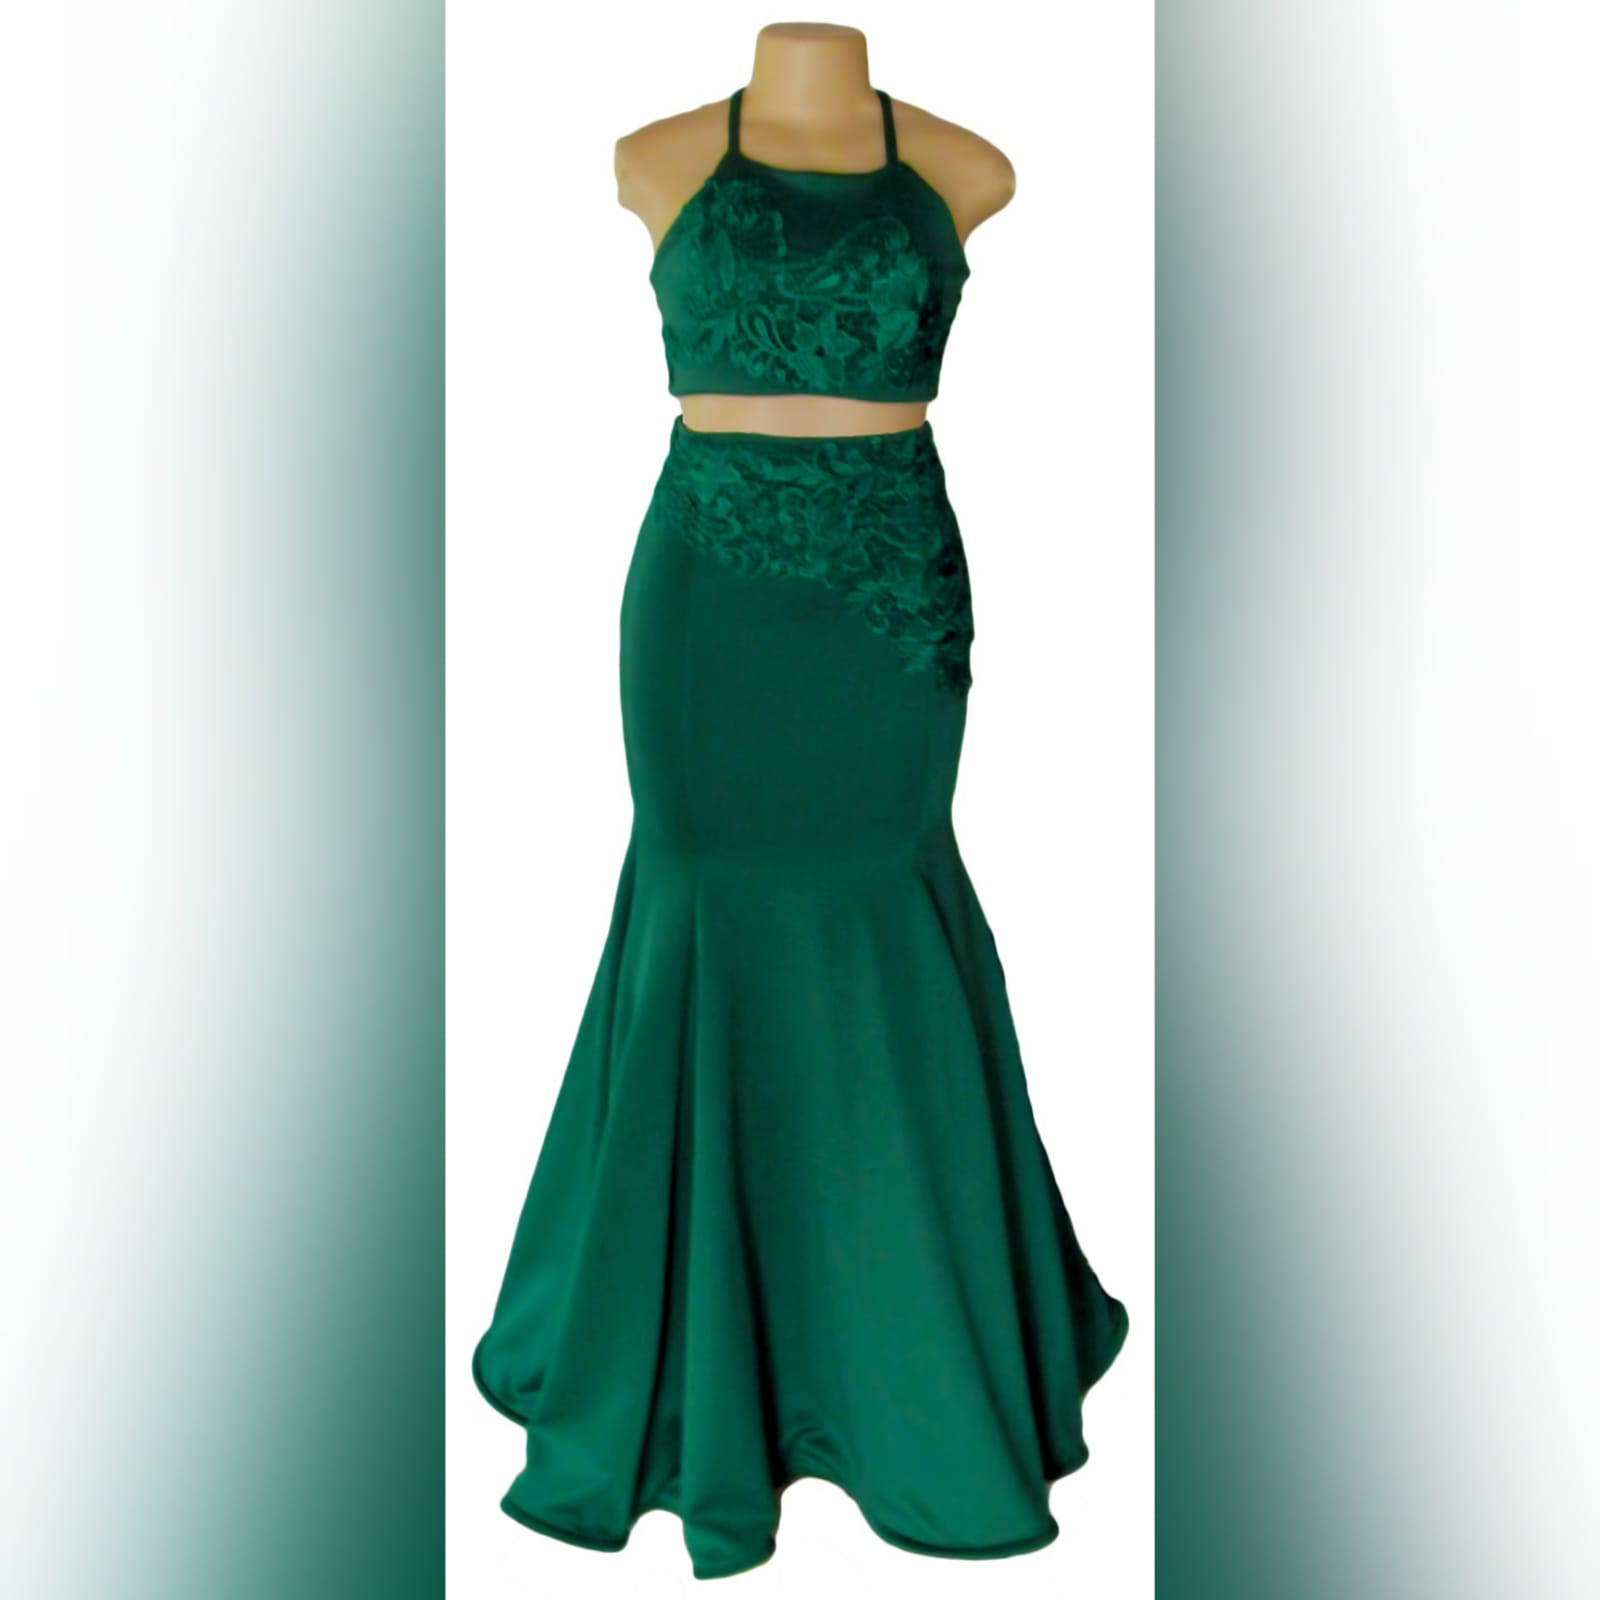 2 piece emerald green mermaid prom dress 5 2 piece emerald green mermaid prom dress. A gorgeous crop top with a lace-up open back, with a mermaid skirt. Lace detail on skirt and top for a classic touch.